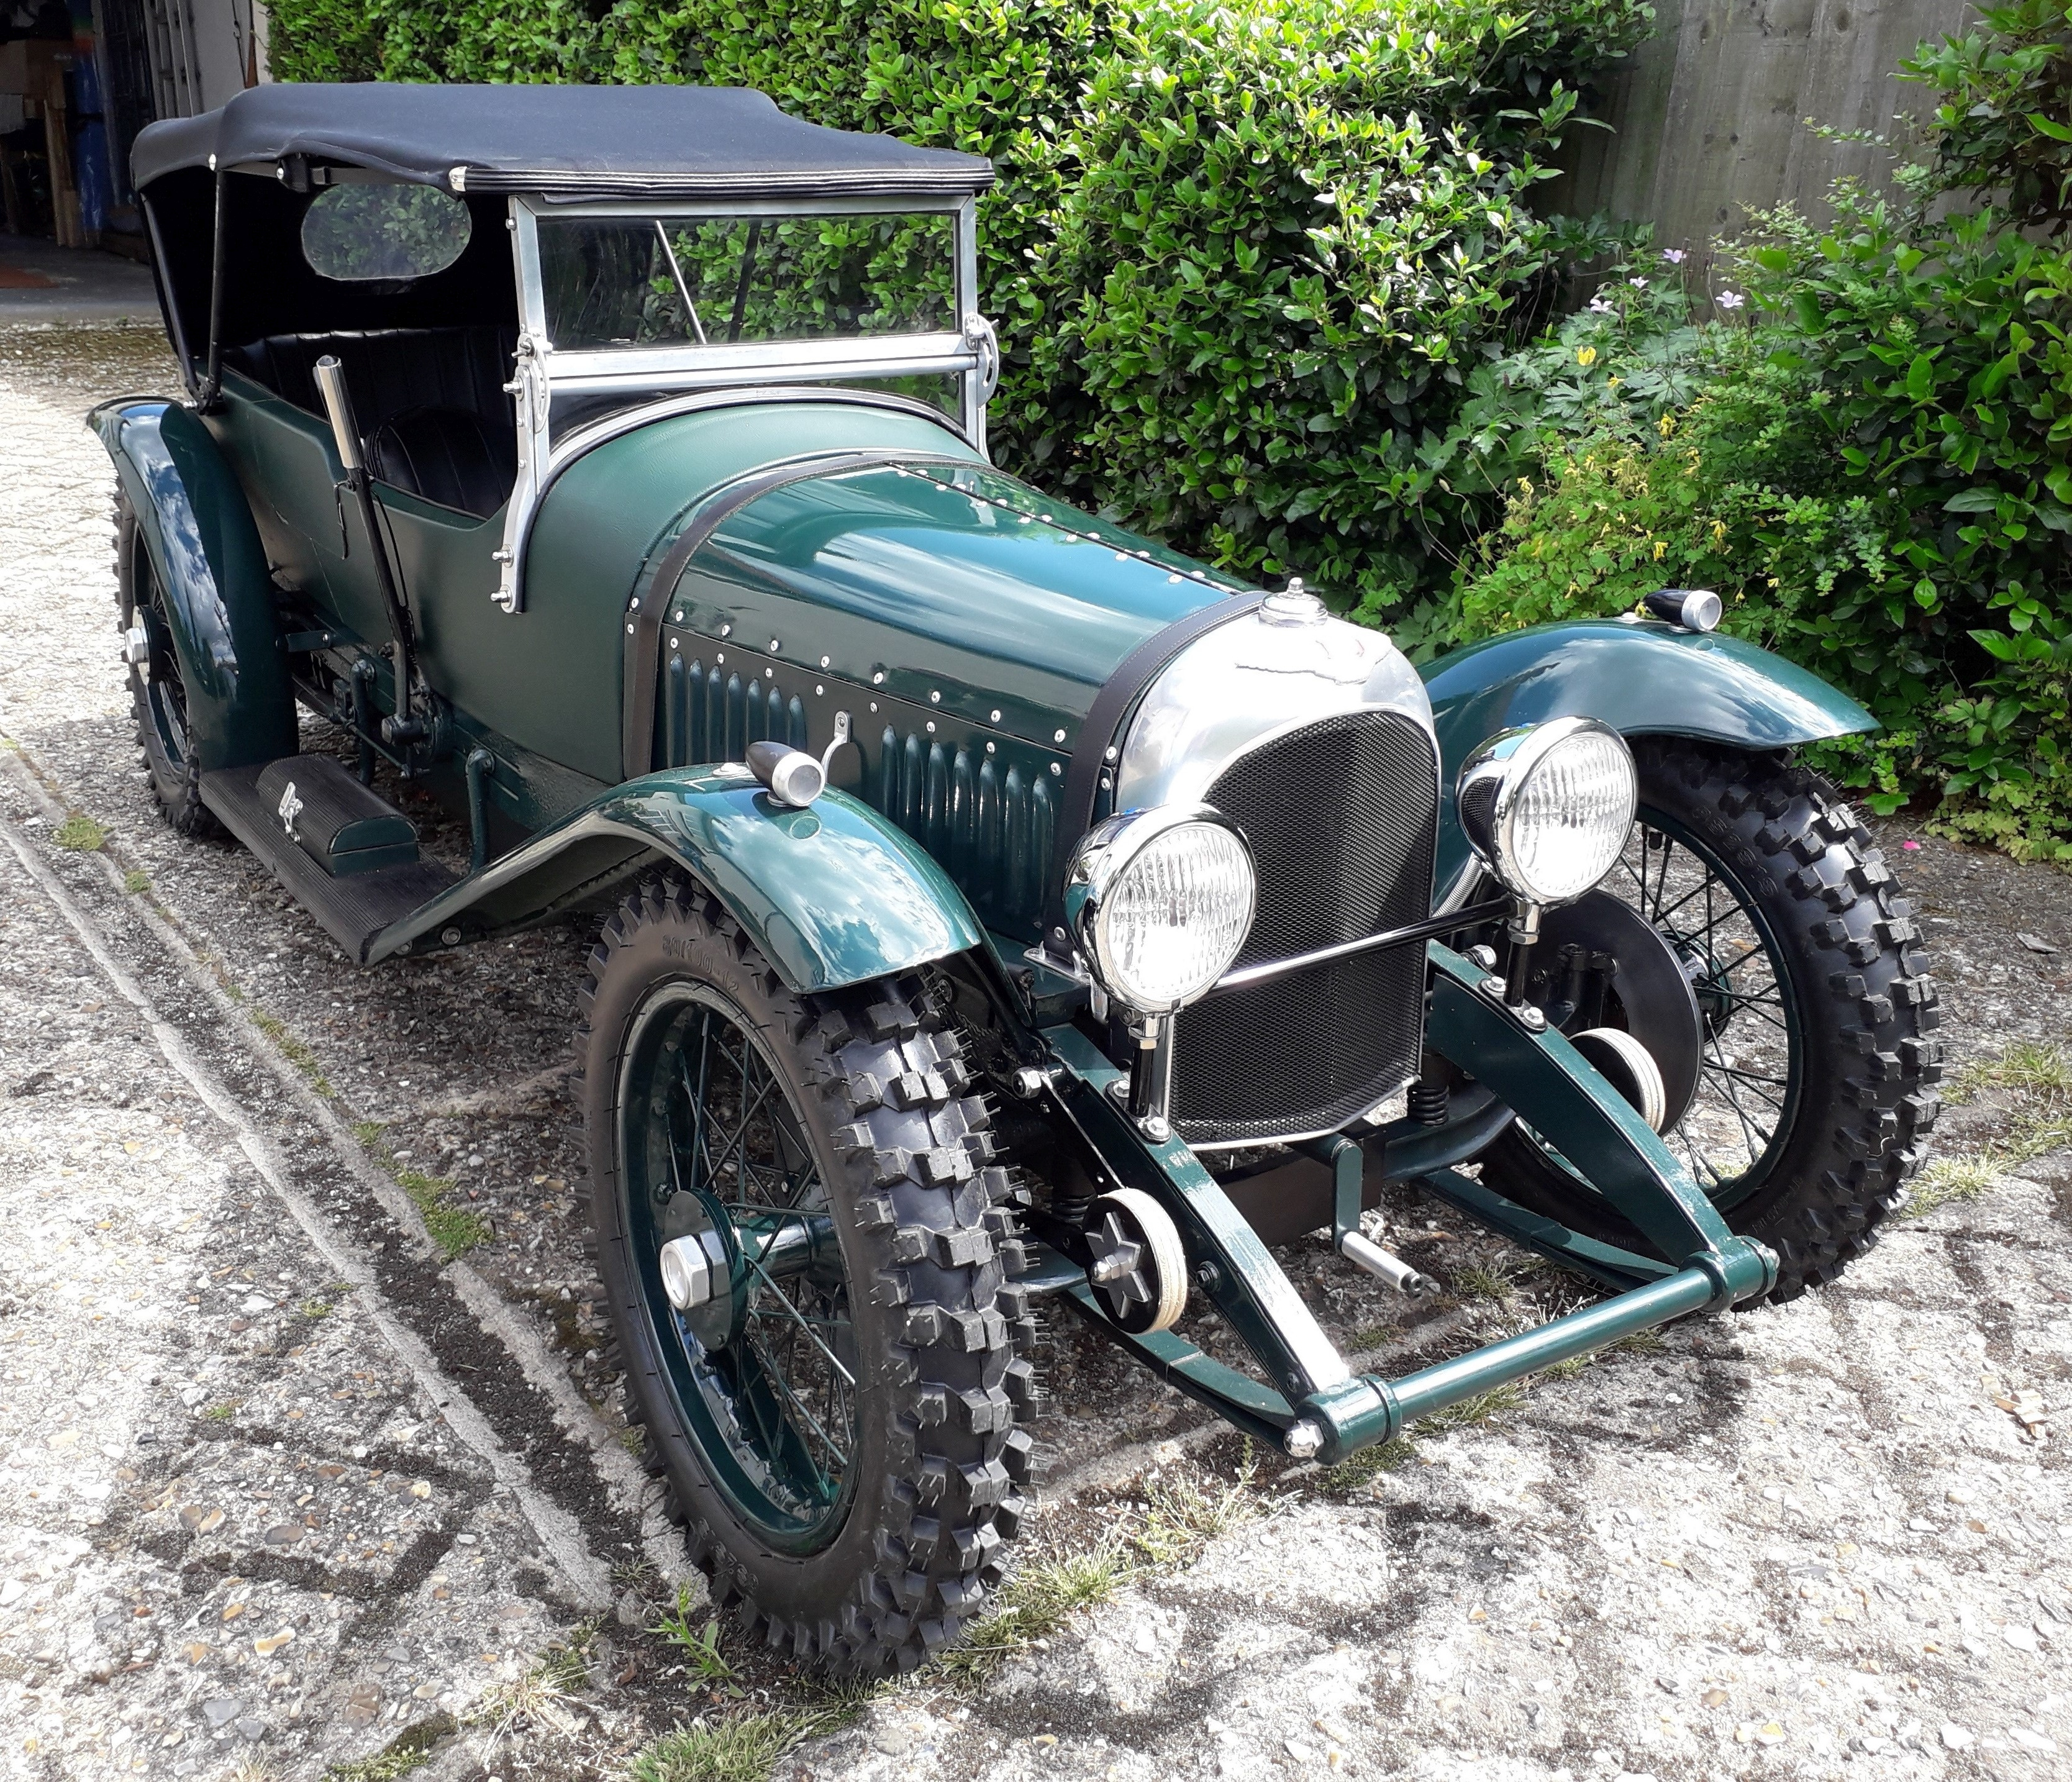 A 'Vintage Bentley' electrically powered child's car,